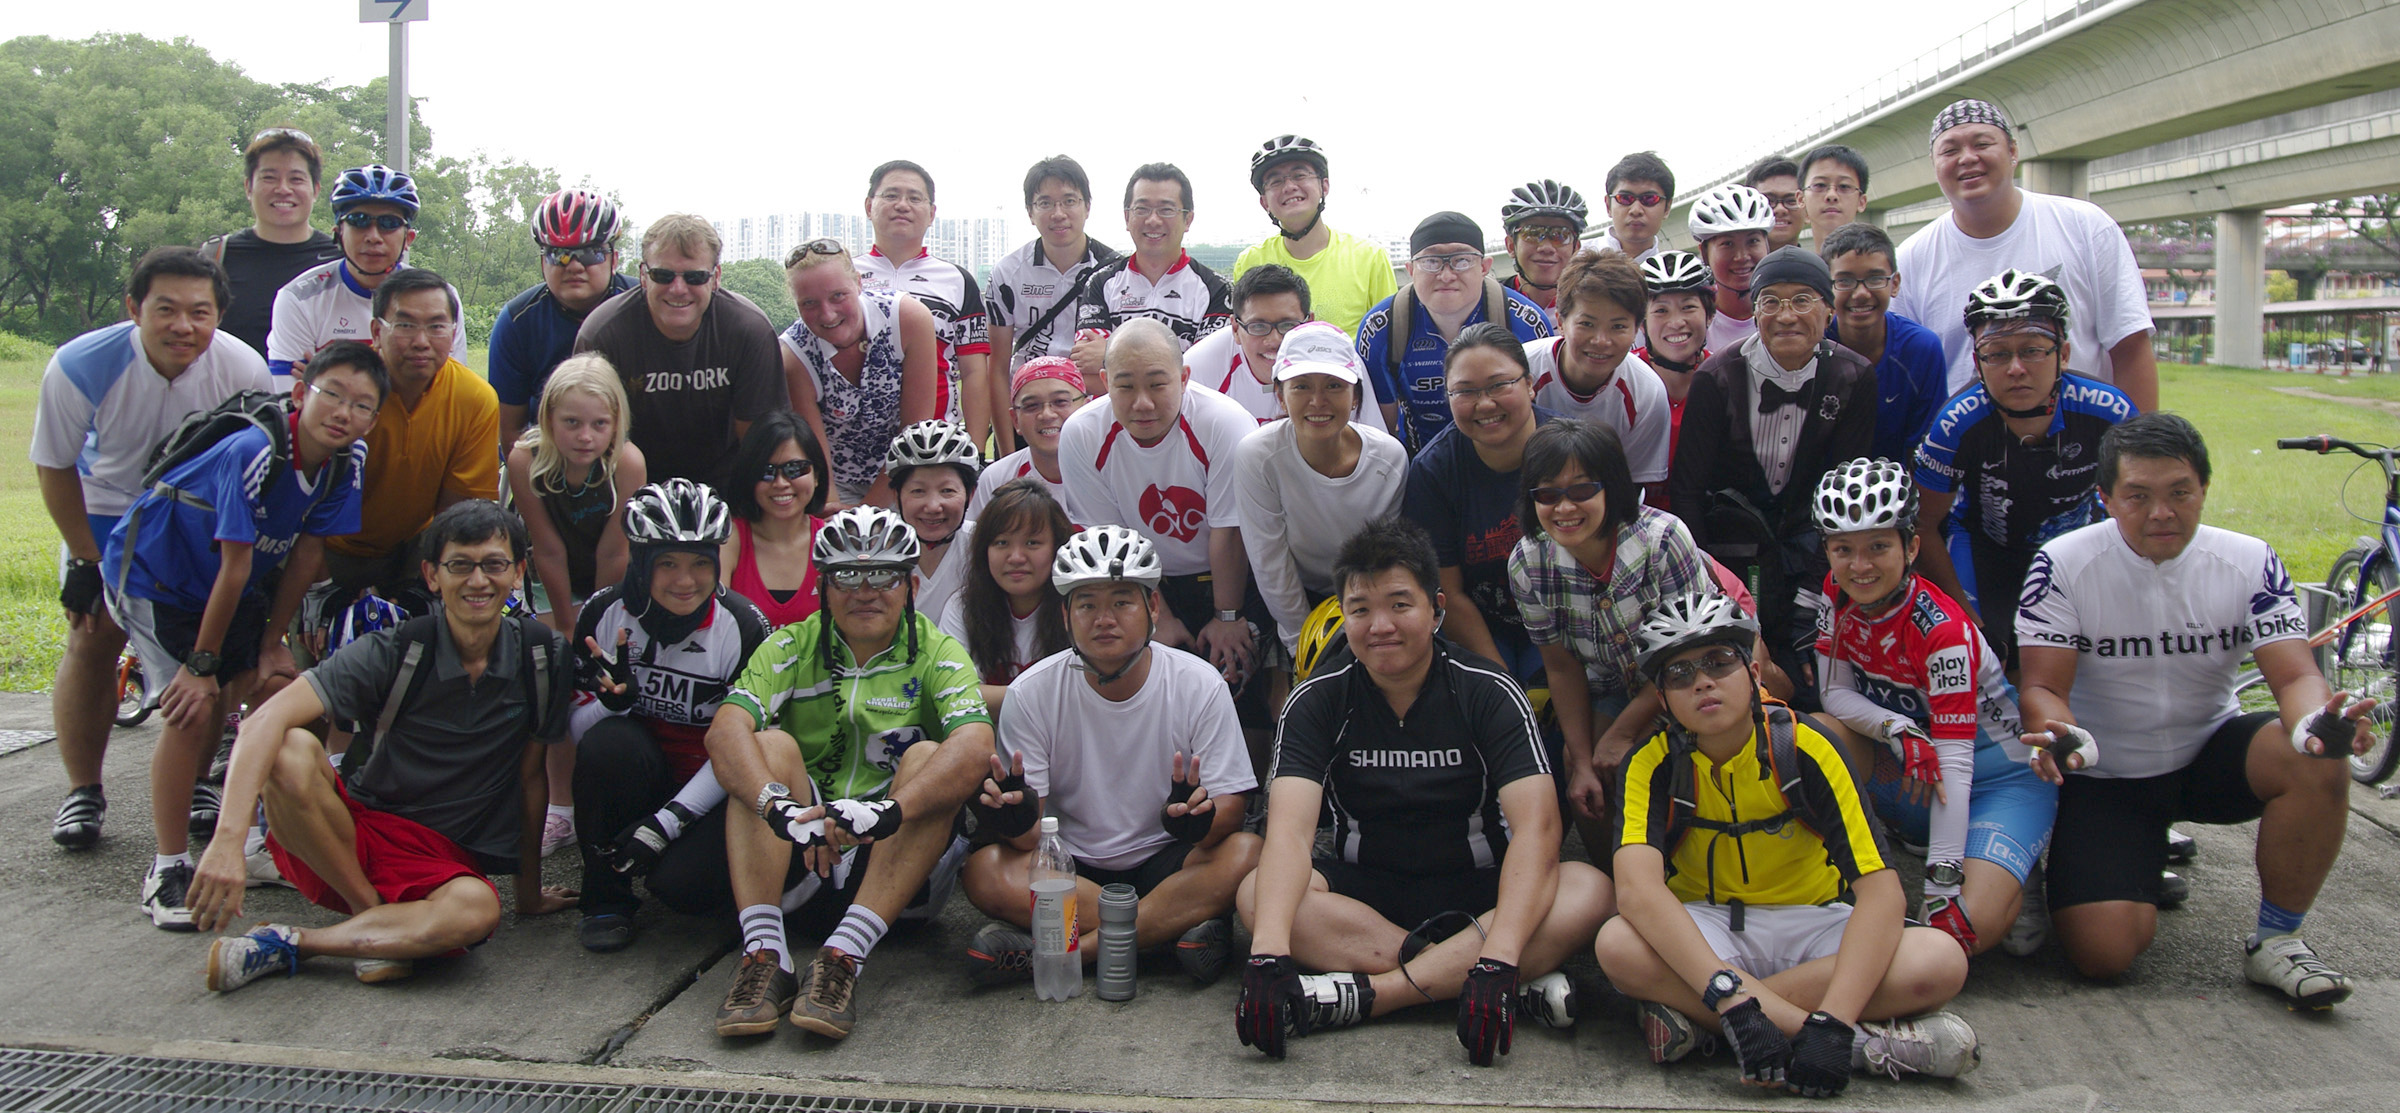 Lovecycling conquer Tuas